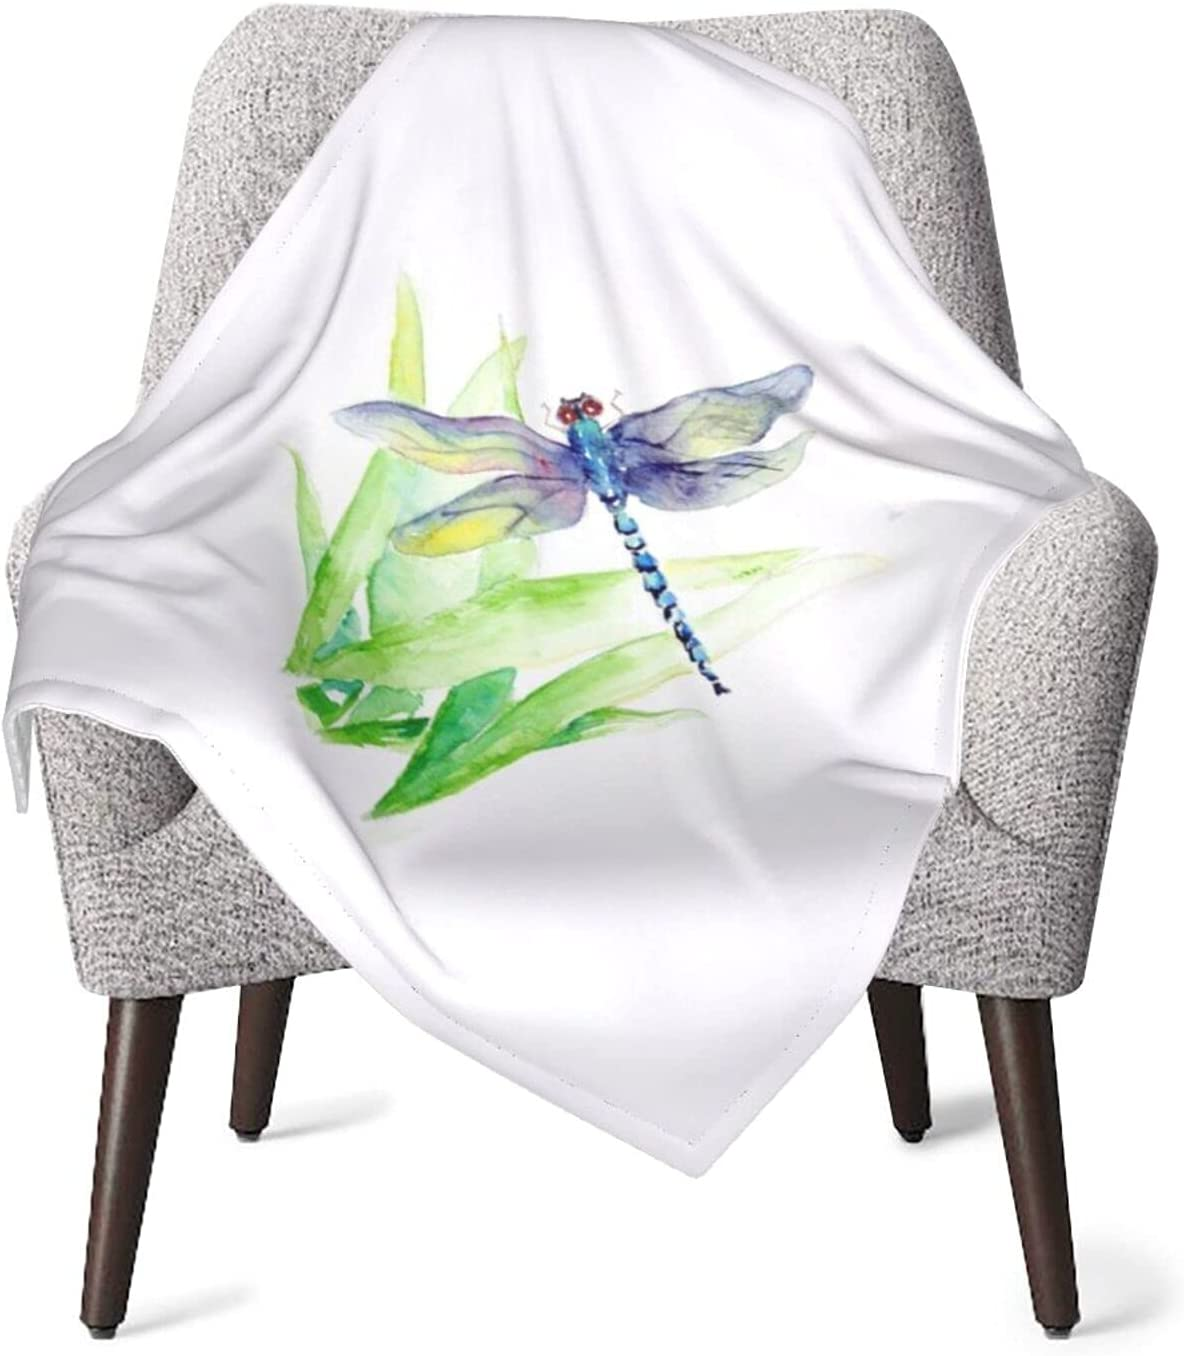 JZDACH Unisex Baby Max 66% OFF Receiving Gray Blankets Dragonfly Ranking TOP5 Painting I